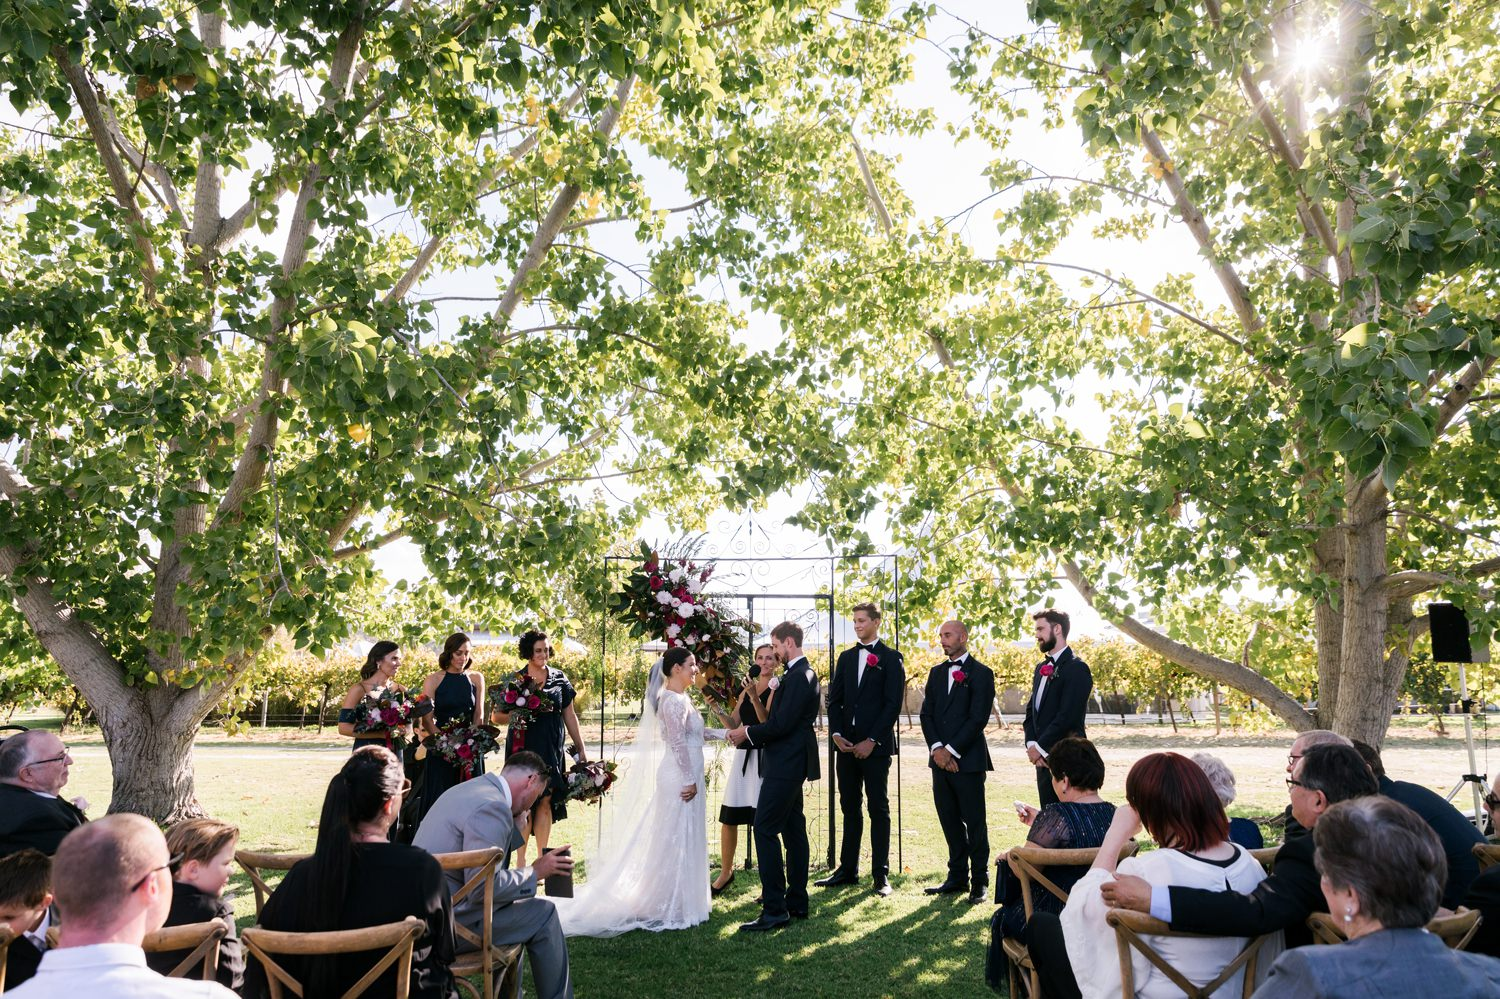 sarah jared the vinegrove mudgee canberra wedding photographer erin latimore 61.jpg